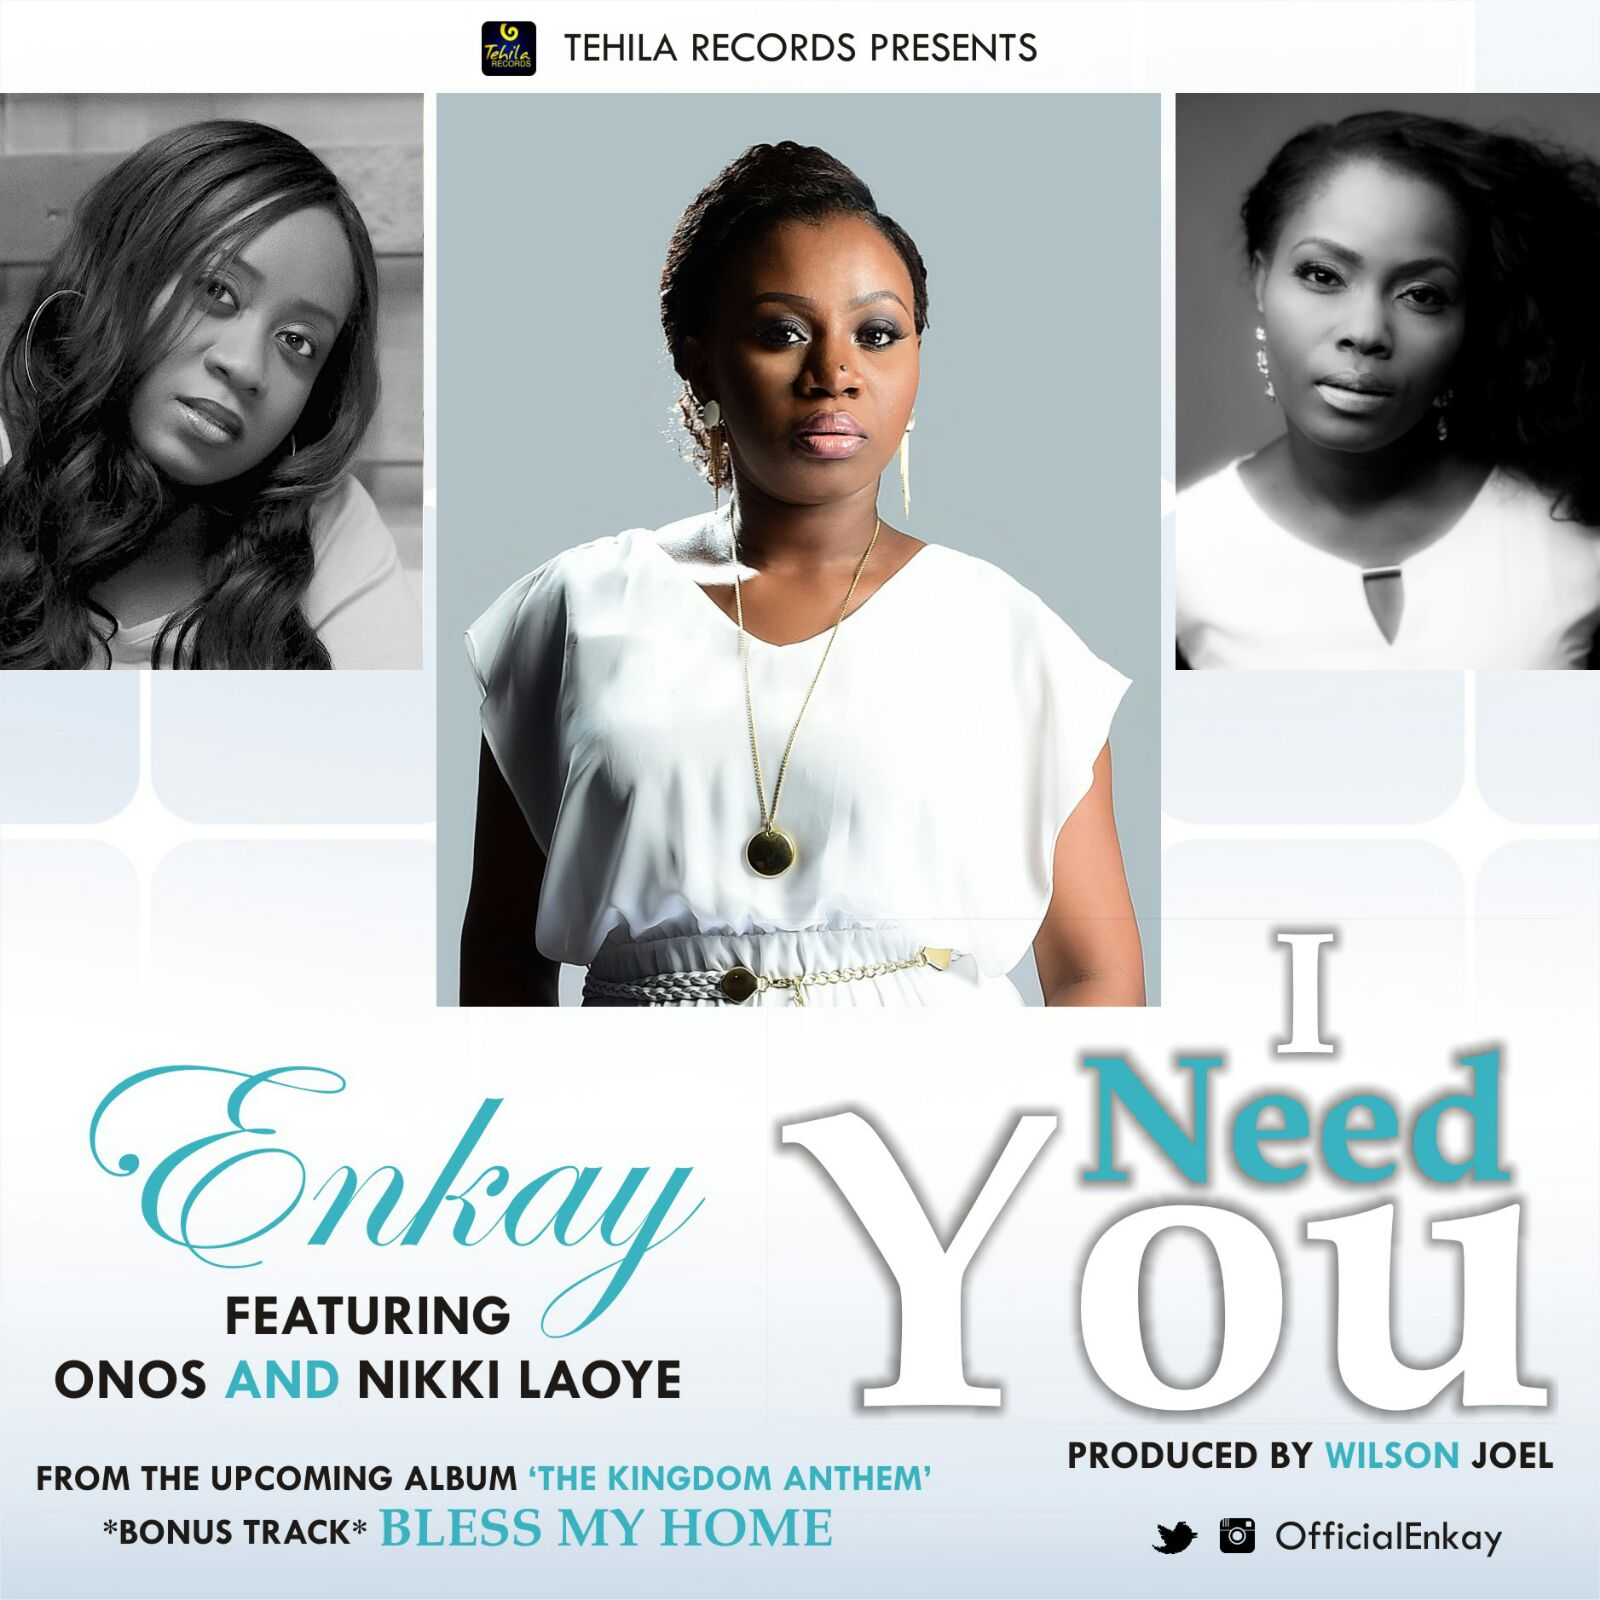 enkay feat onos and nikki laoye